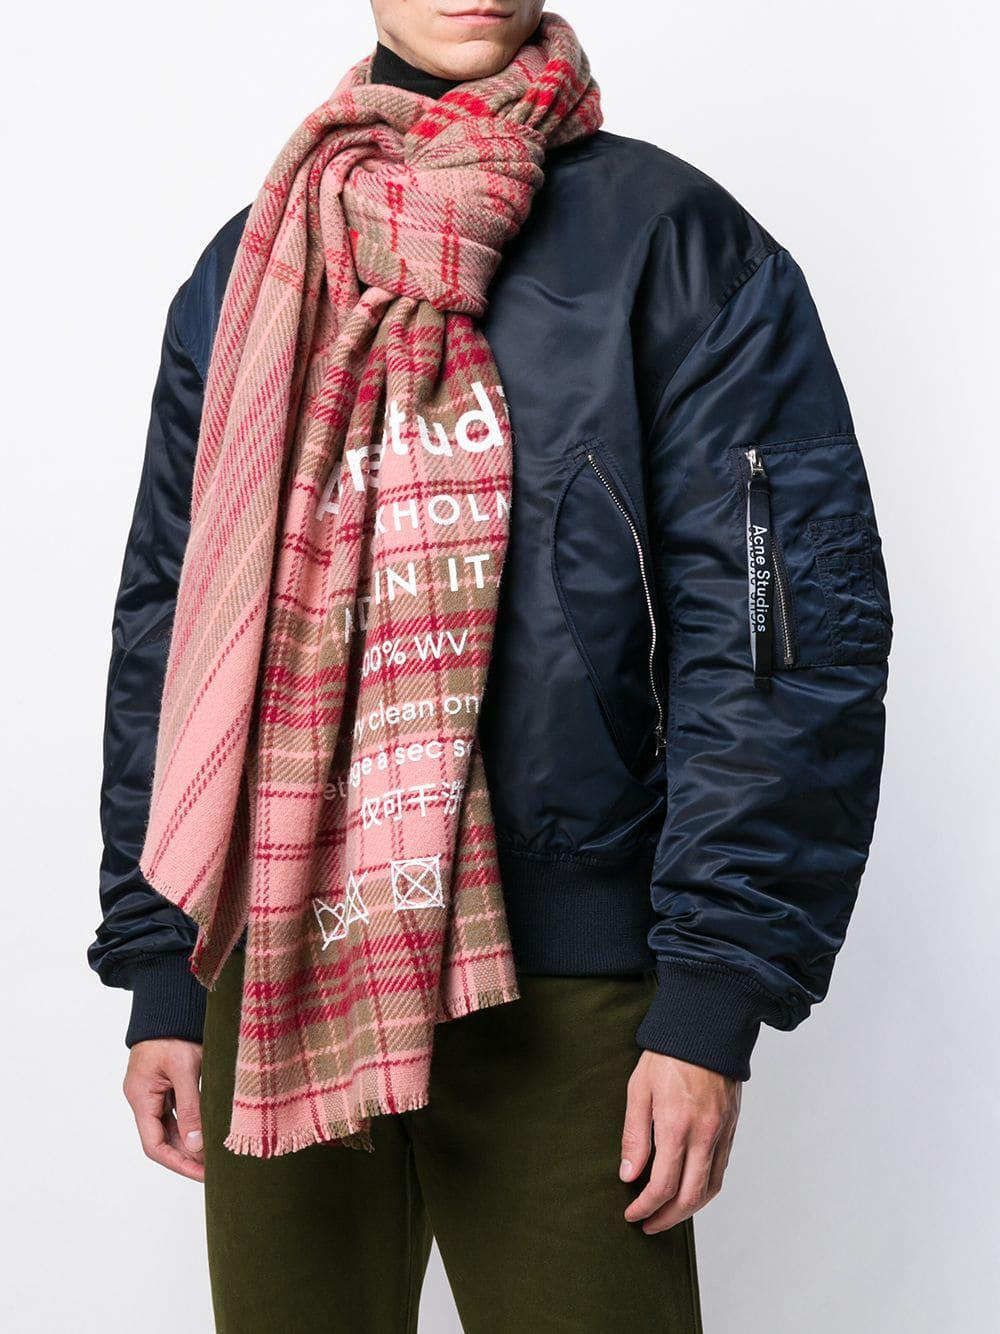 01a47b5cc03a5 Acne Studios Cassiar Check Oversized Scarf in Pink - Lyst